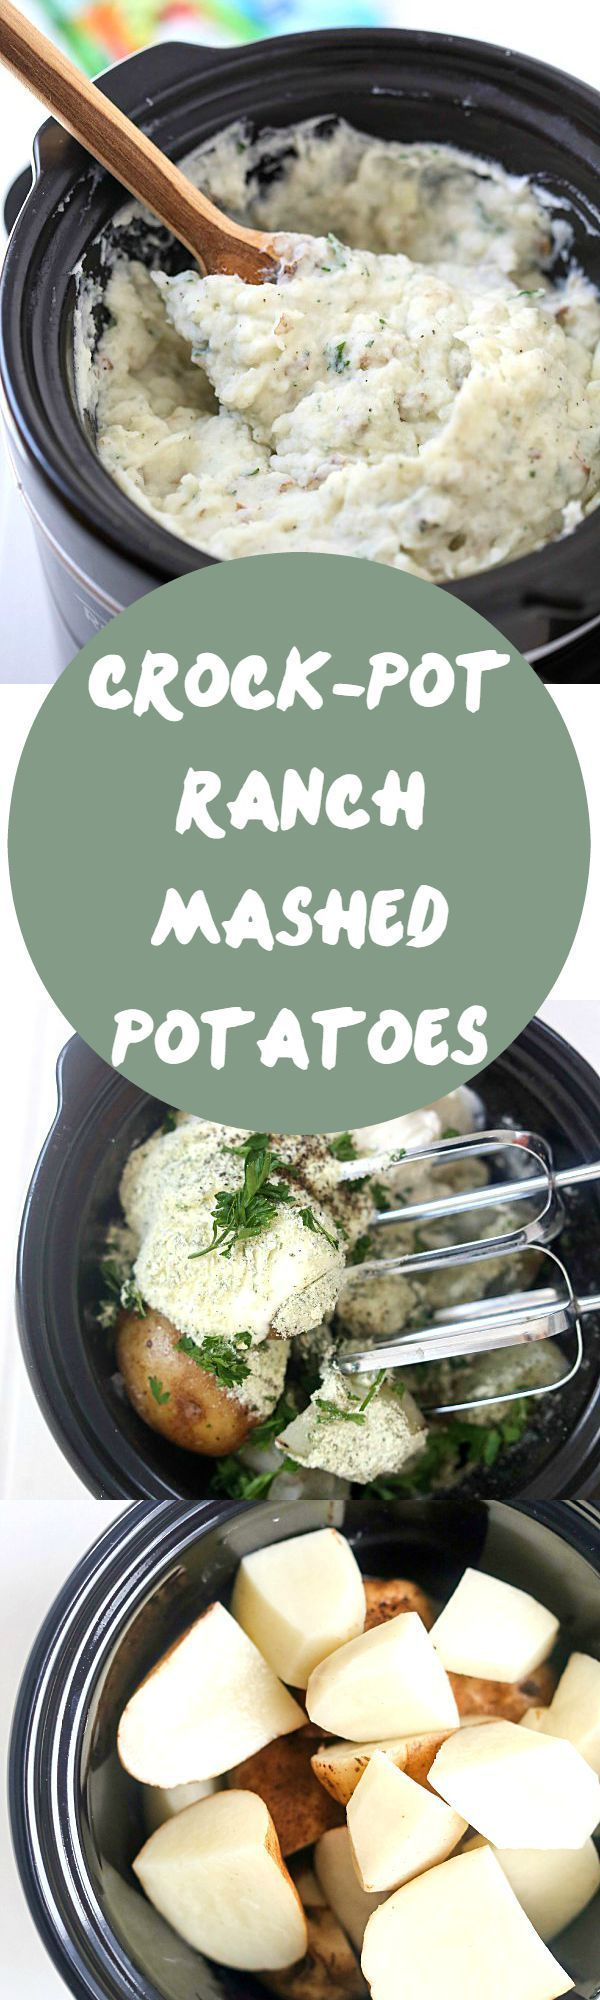 Crock-Pot Ranch Mashed Potatoes - The creamiest and silkiest mashed potatoes ever! We love mashed potatoes with sour cream to create the perfect texture. Mashed potatoes in the crockpot are SO easy!